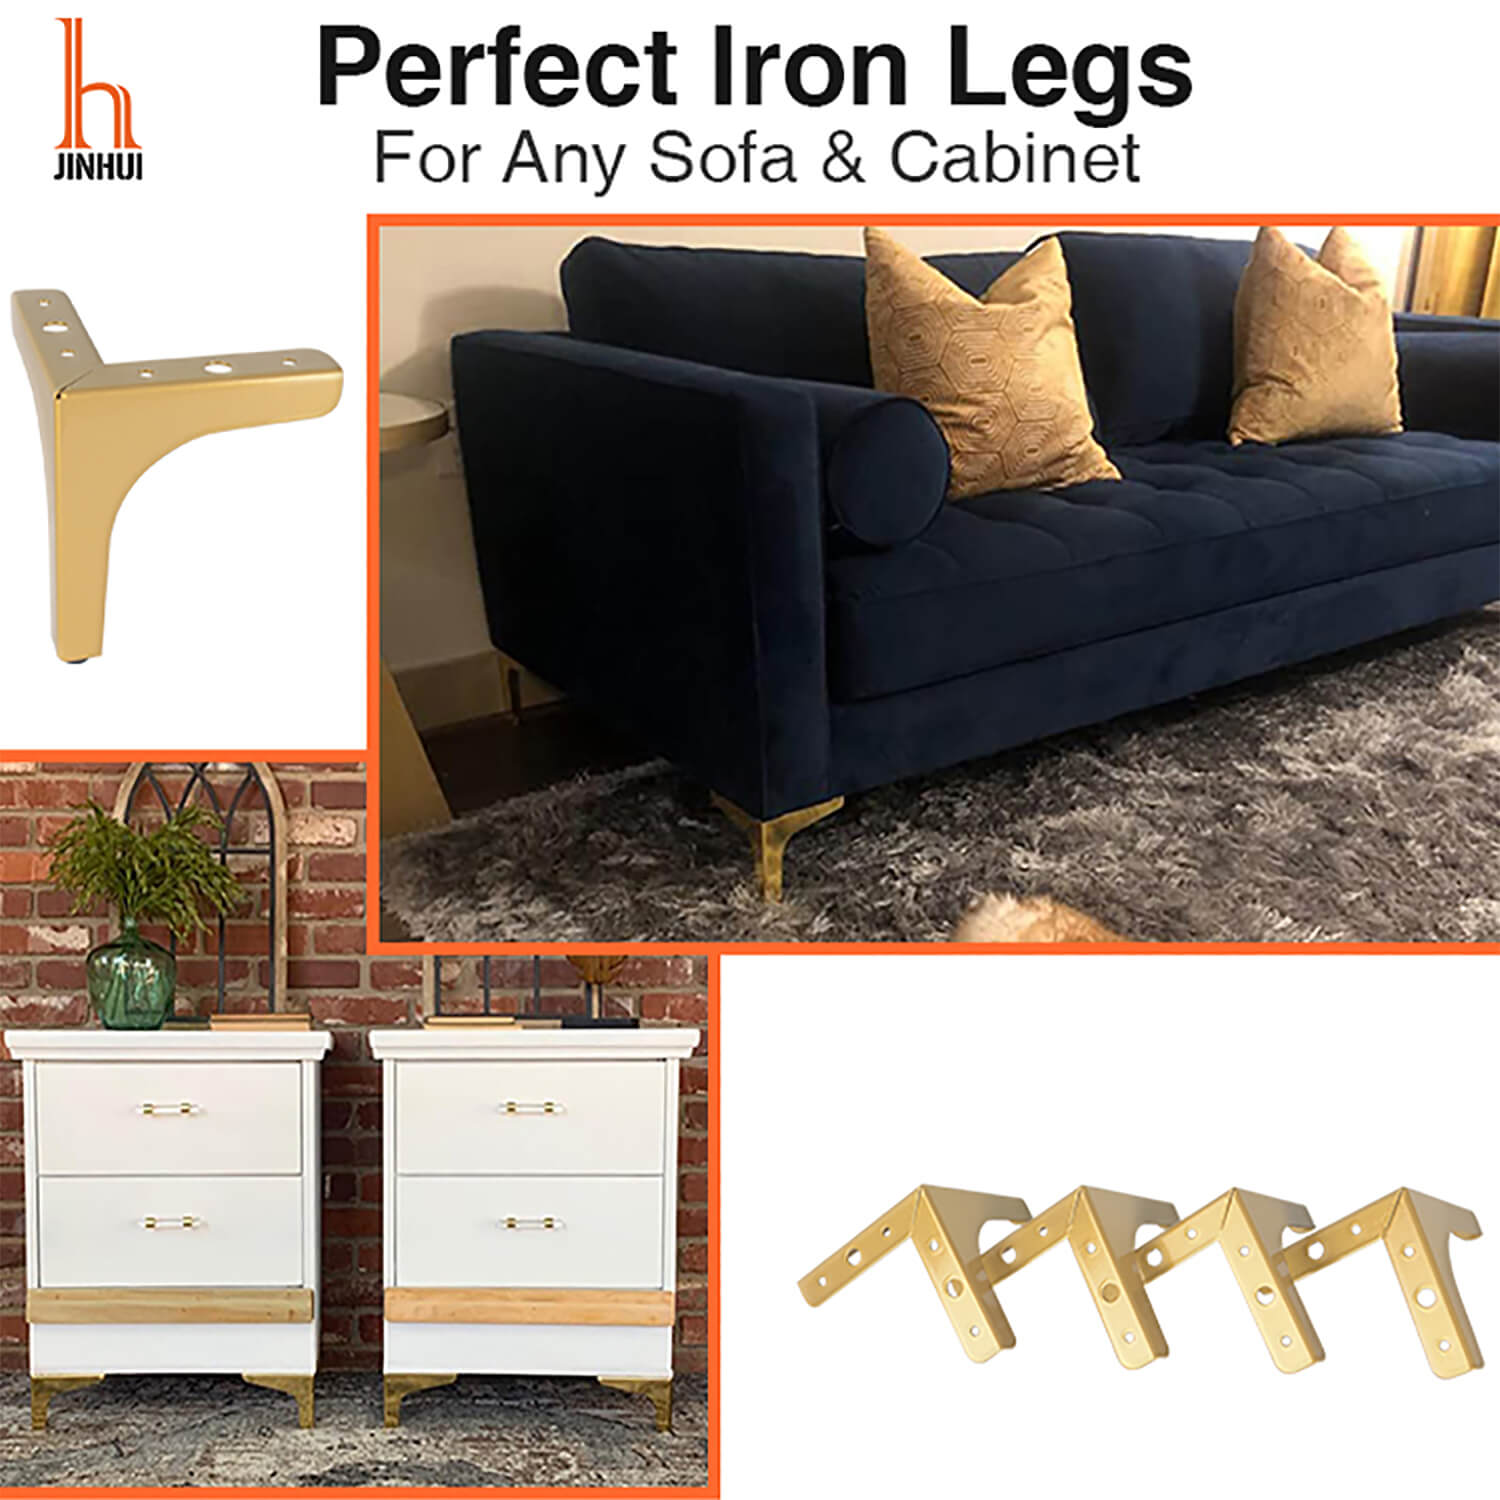 Furniture Legs (3)